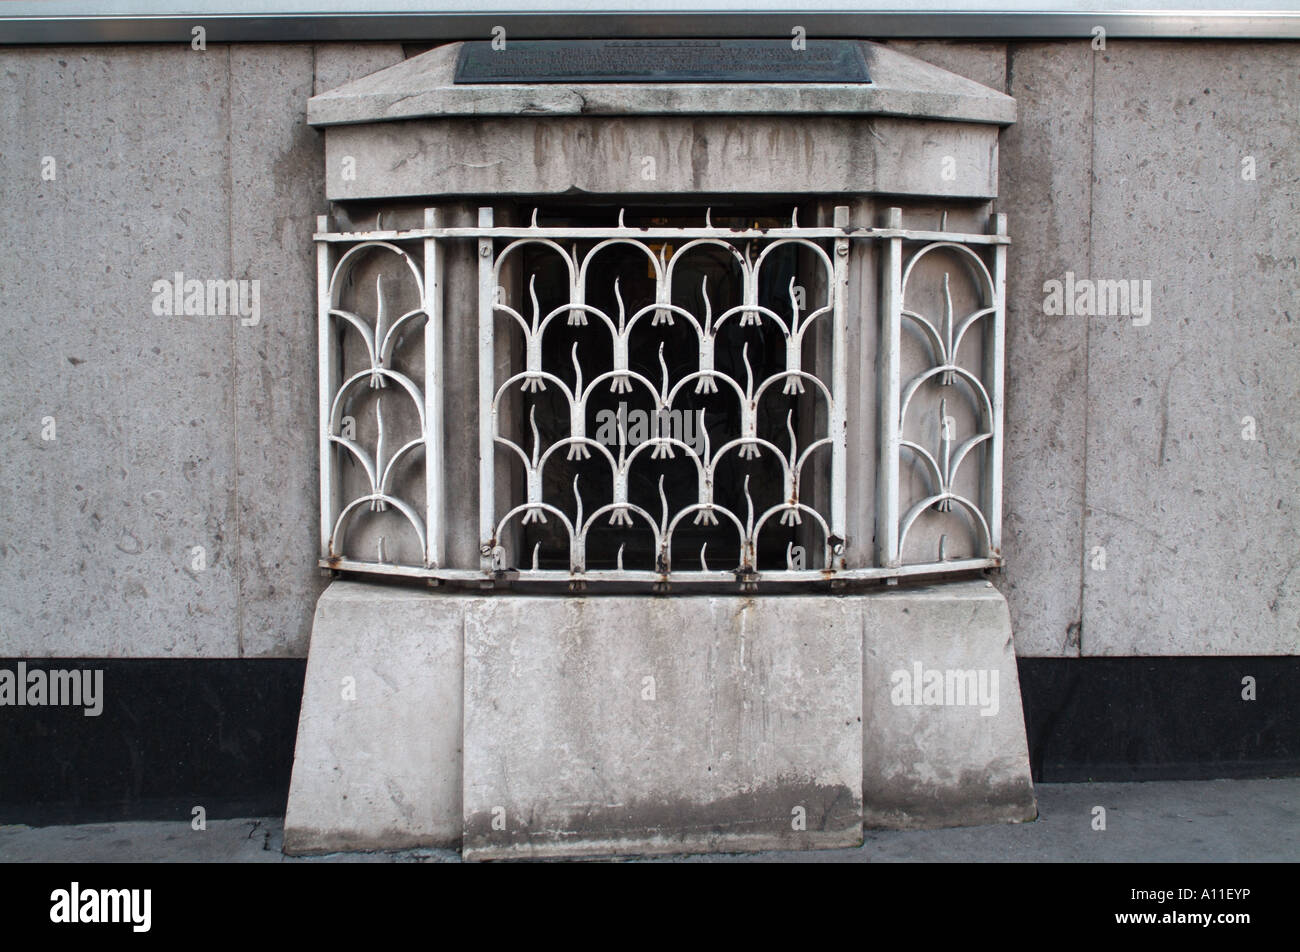 The housing for the London Stone located at 111 Cannon Street, London. - Stock Image